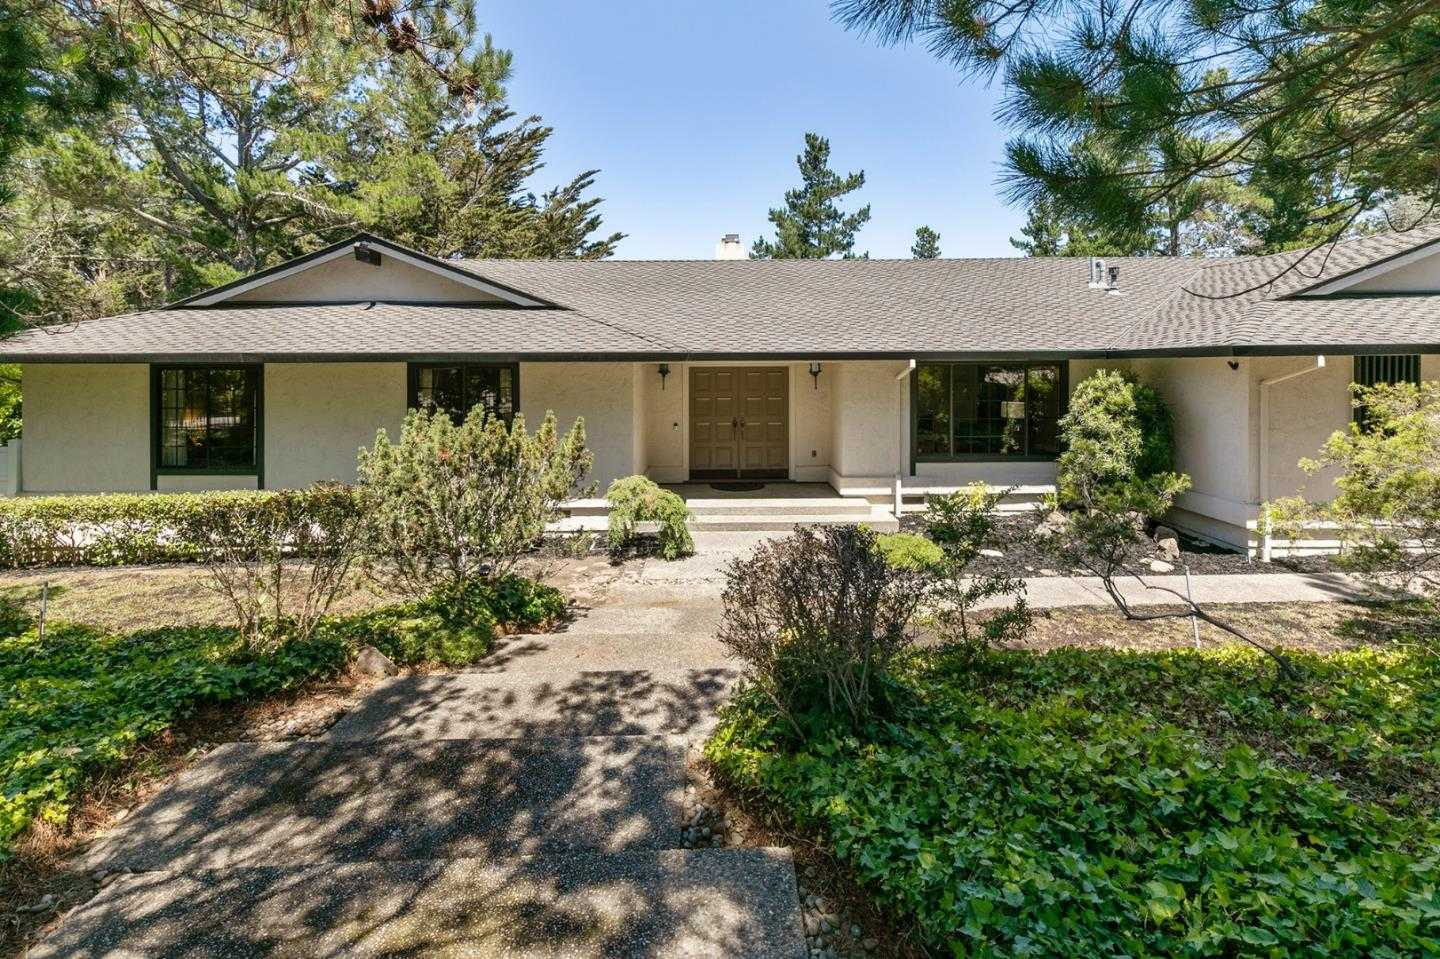 $3,489,000 - 3Br/3Ba -  for Sale in Hillsborough